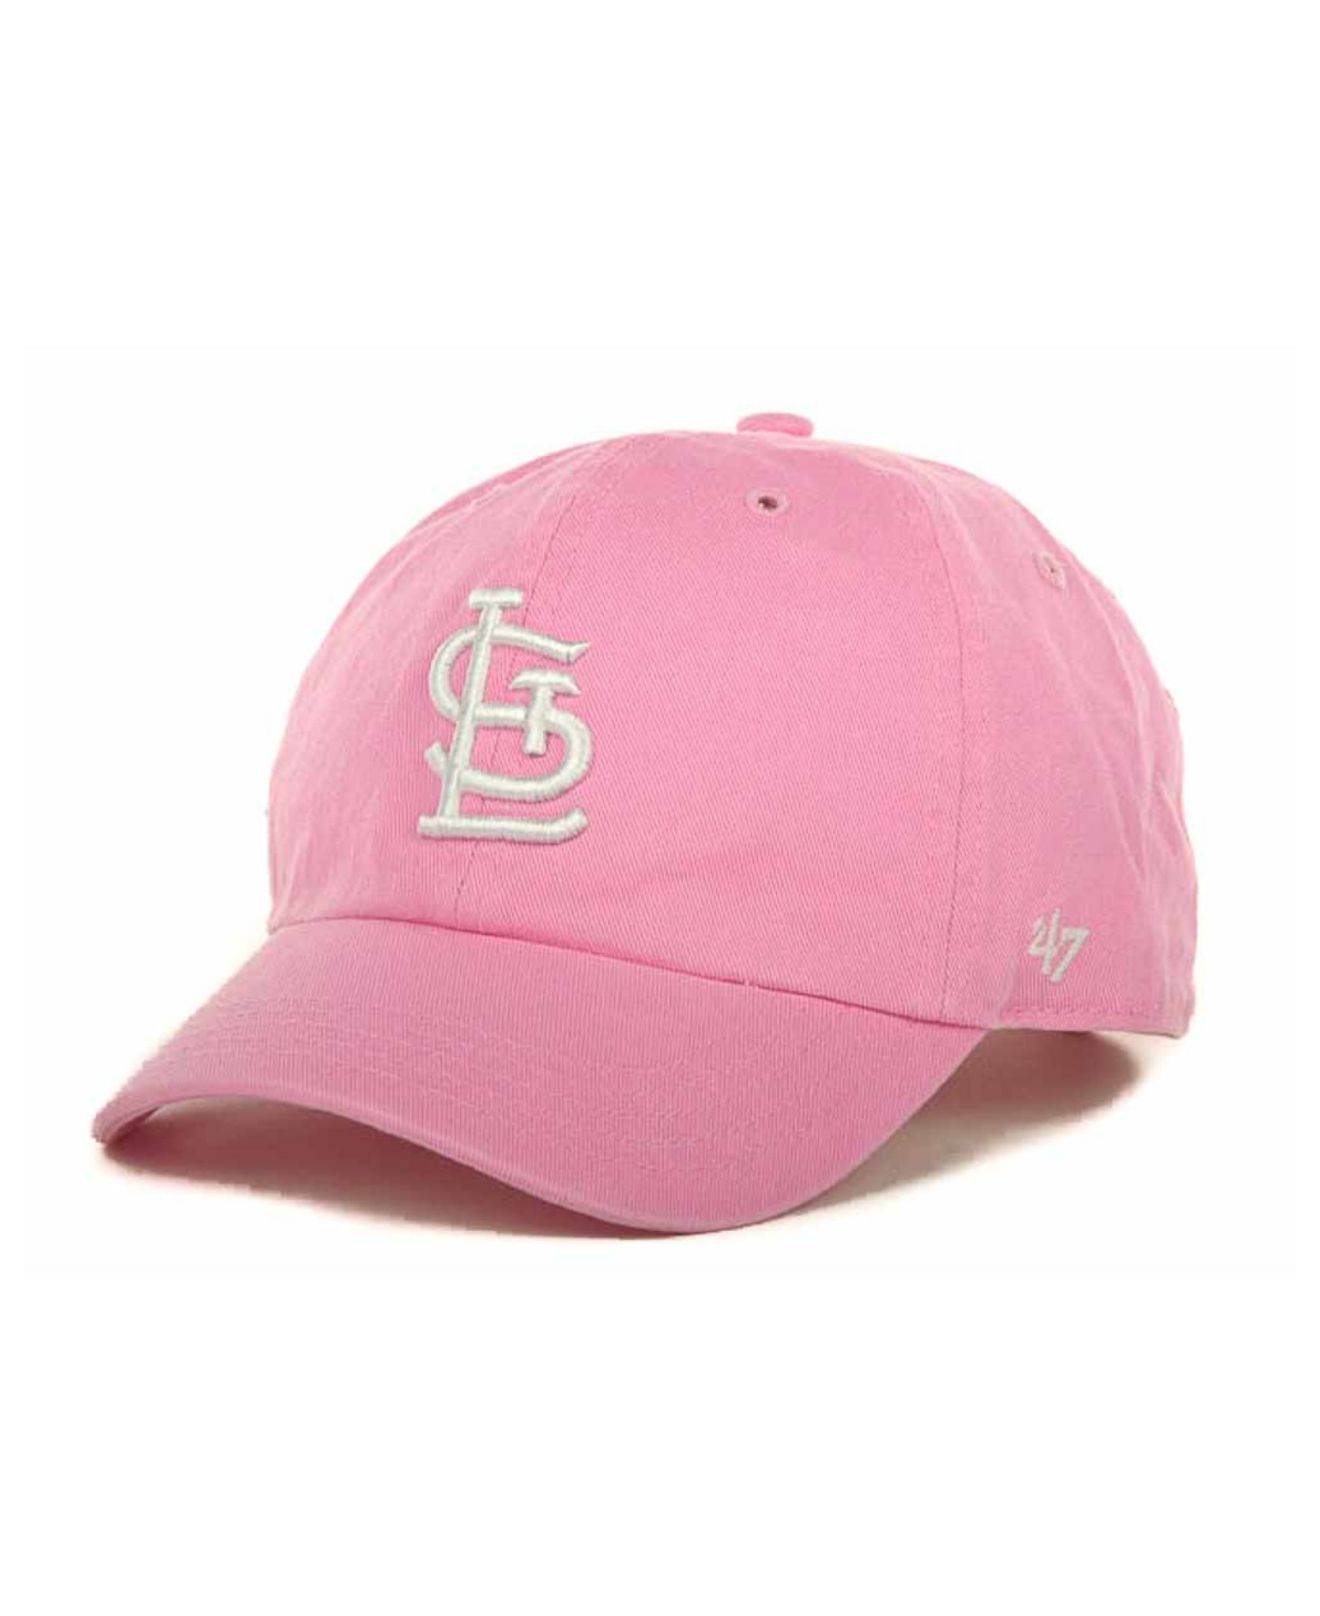 online store 03cc1 9e857 ... shopping lyst 47 brand kids st. louis cardinals clean up cap in pink  for men